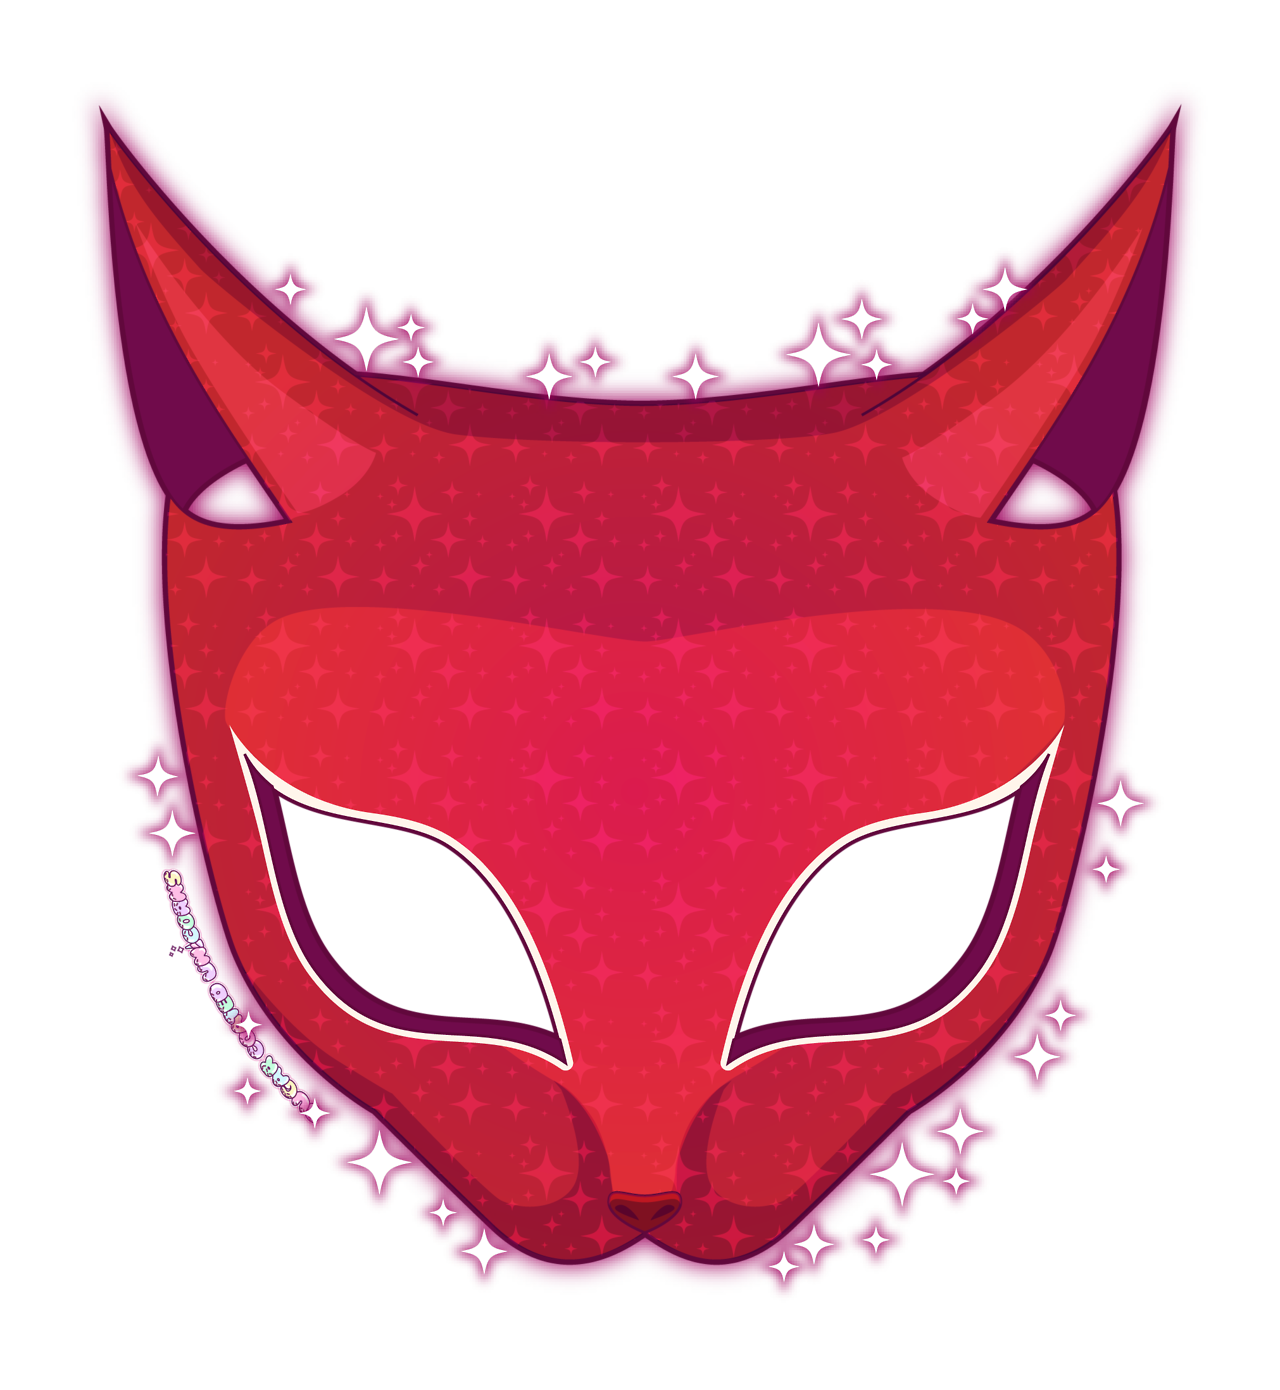 Persona 5 mask png. Tumblr needed to get